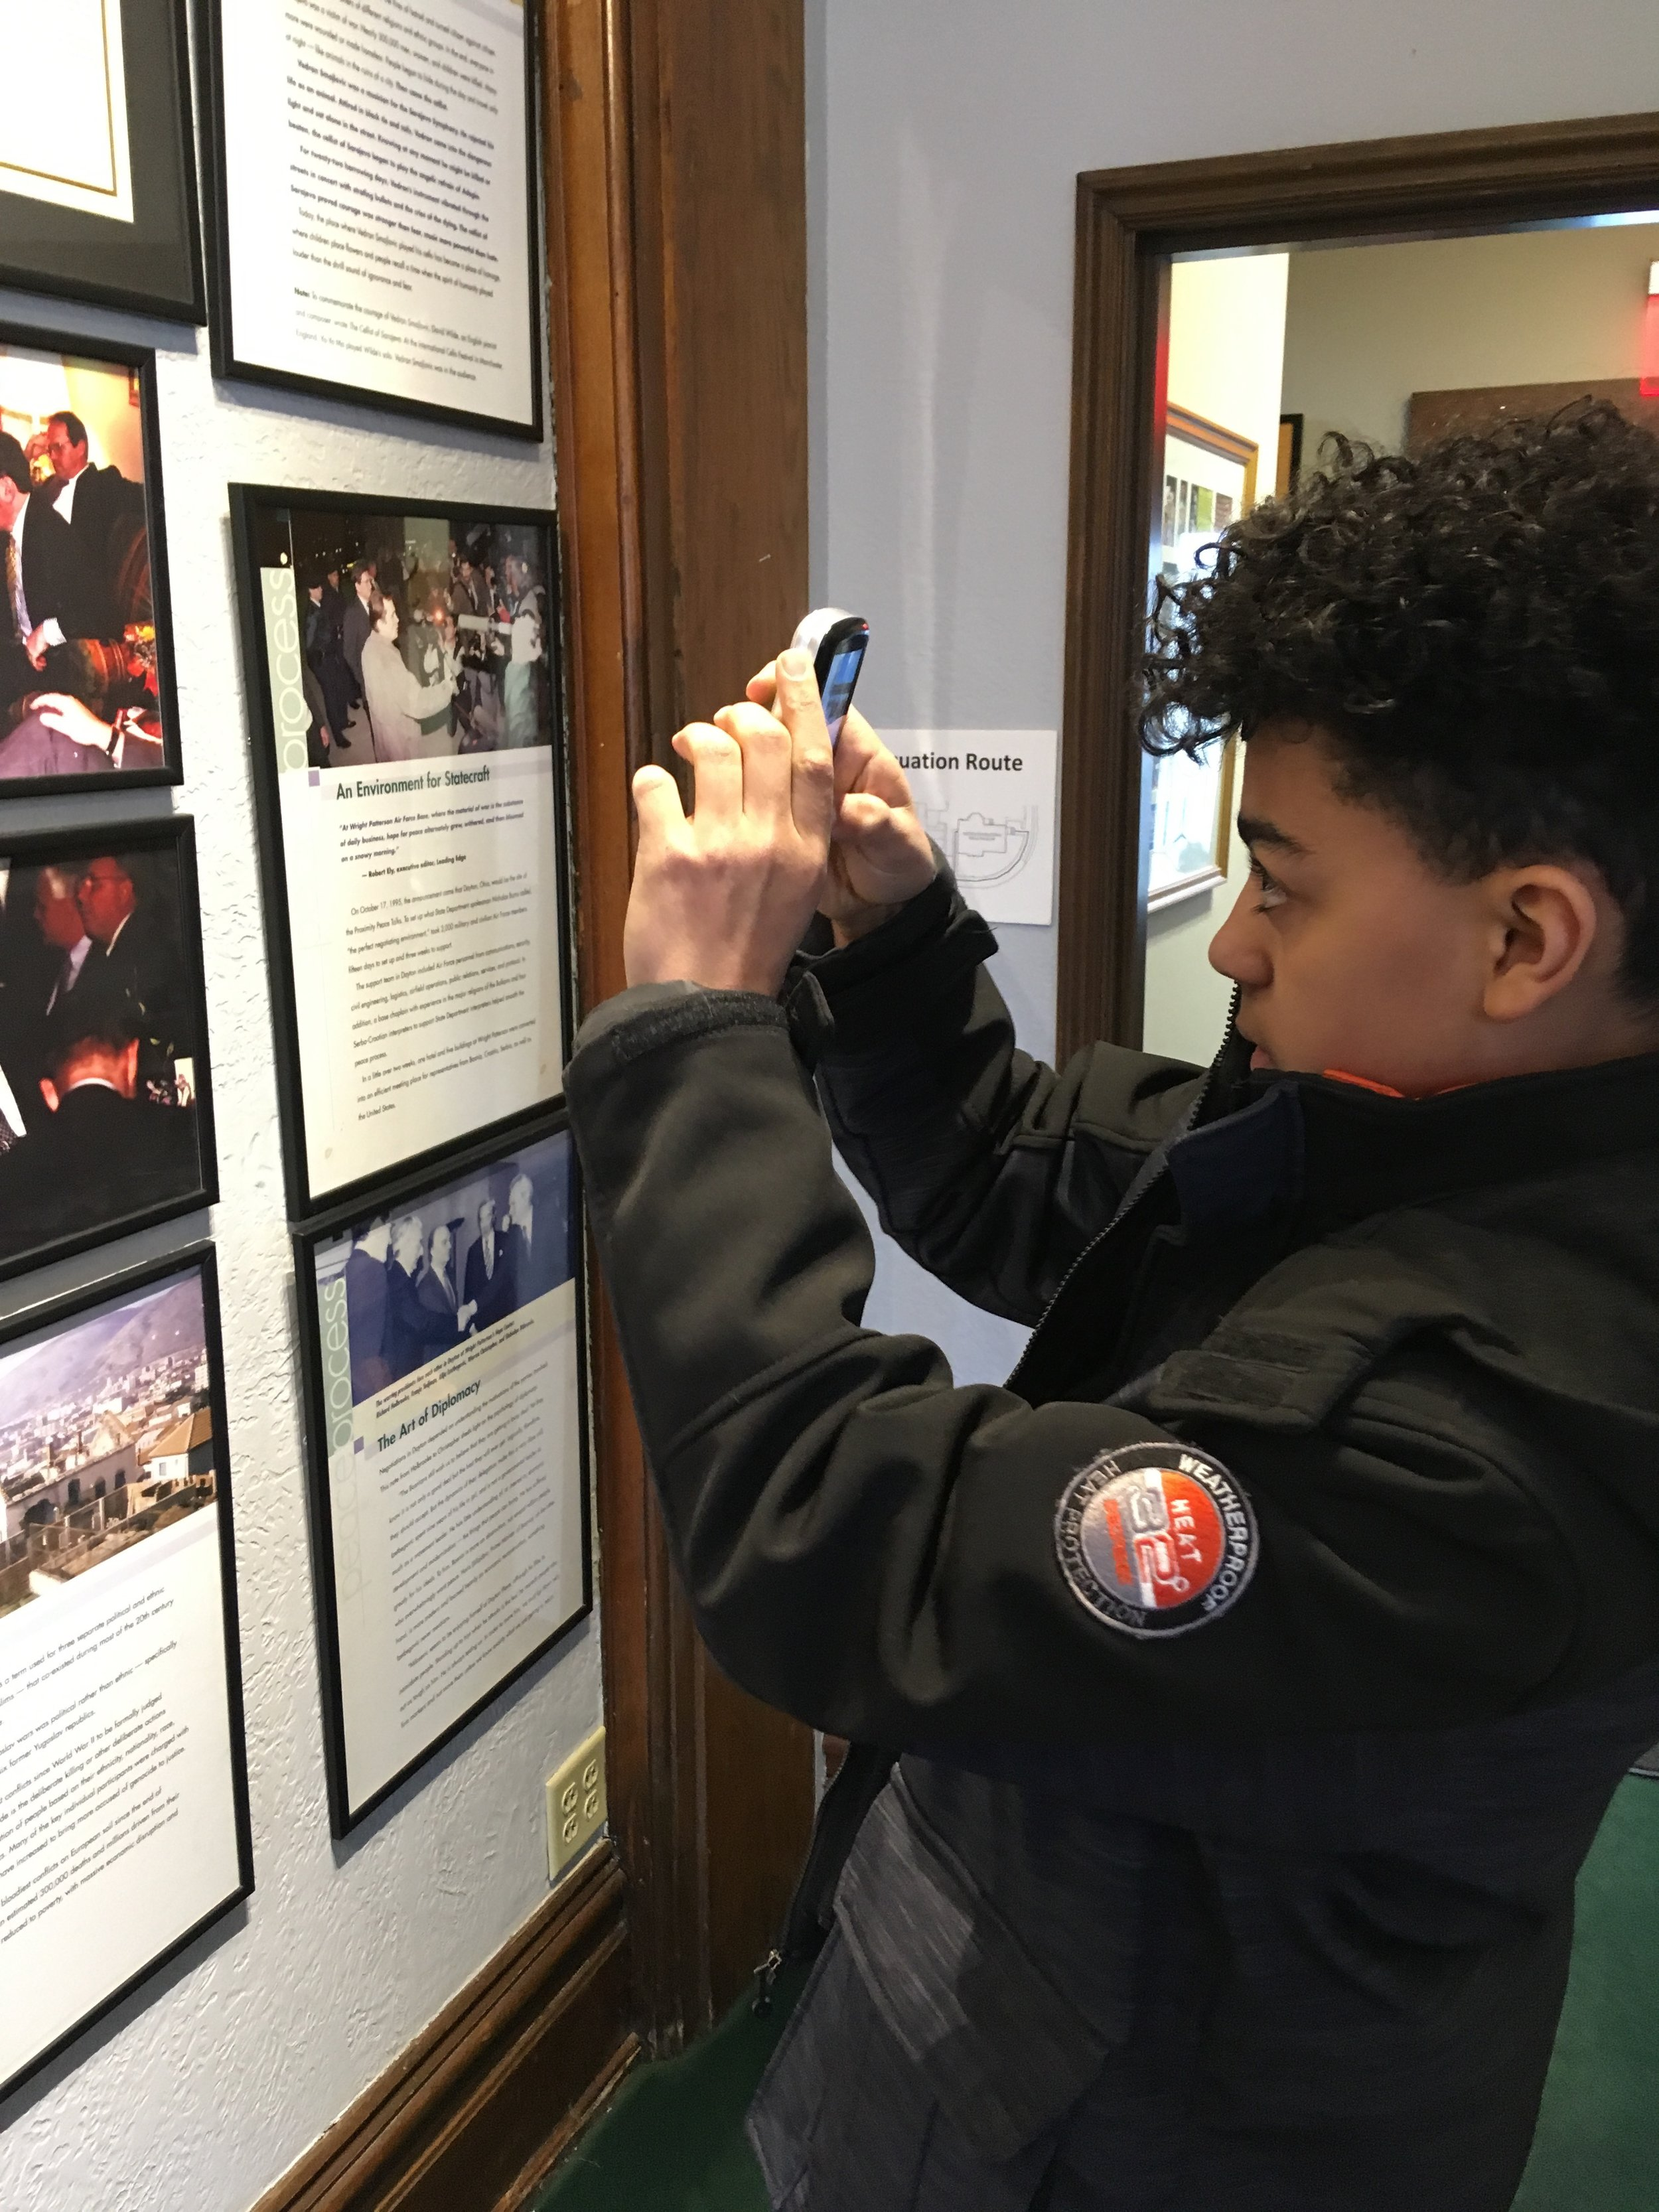 Keo, a teenager from Minnesota spent a couple hours of his spring breakout the Peace Museum doing research on the Dayton Peace Accords. Keo is preparing for his school's annual National History Day project, which for him will be a ten minute video production.